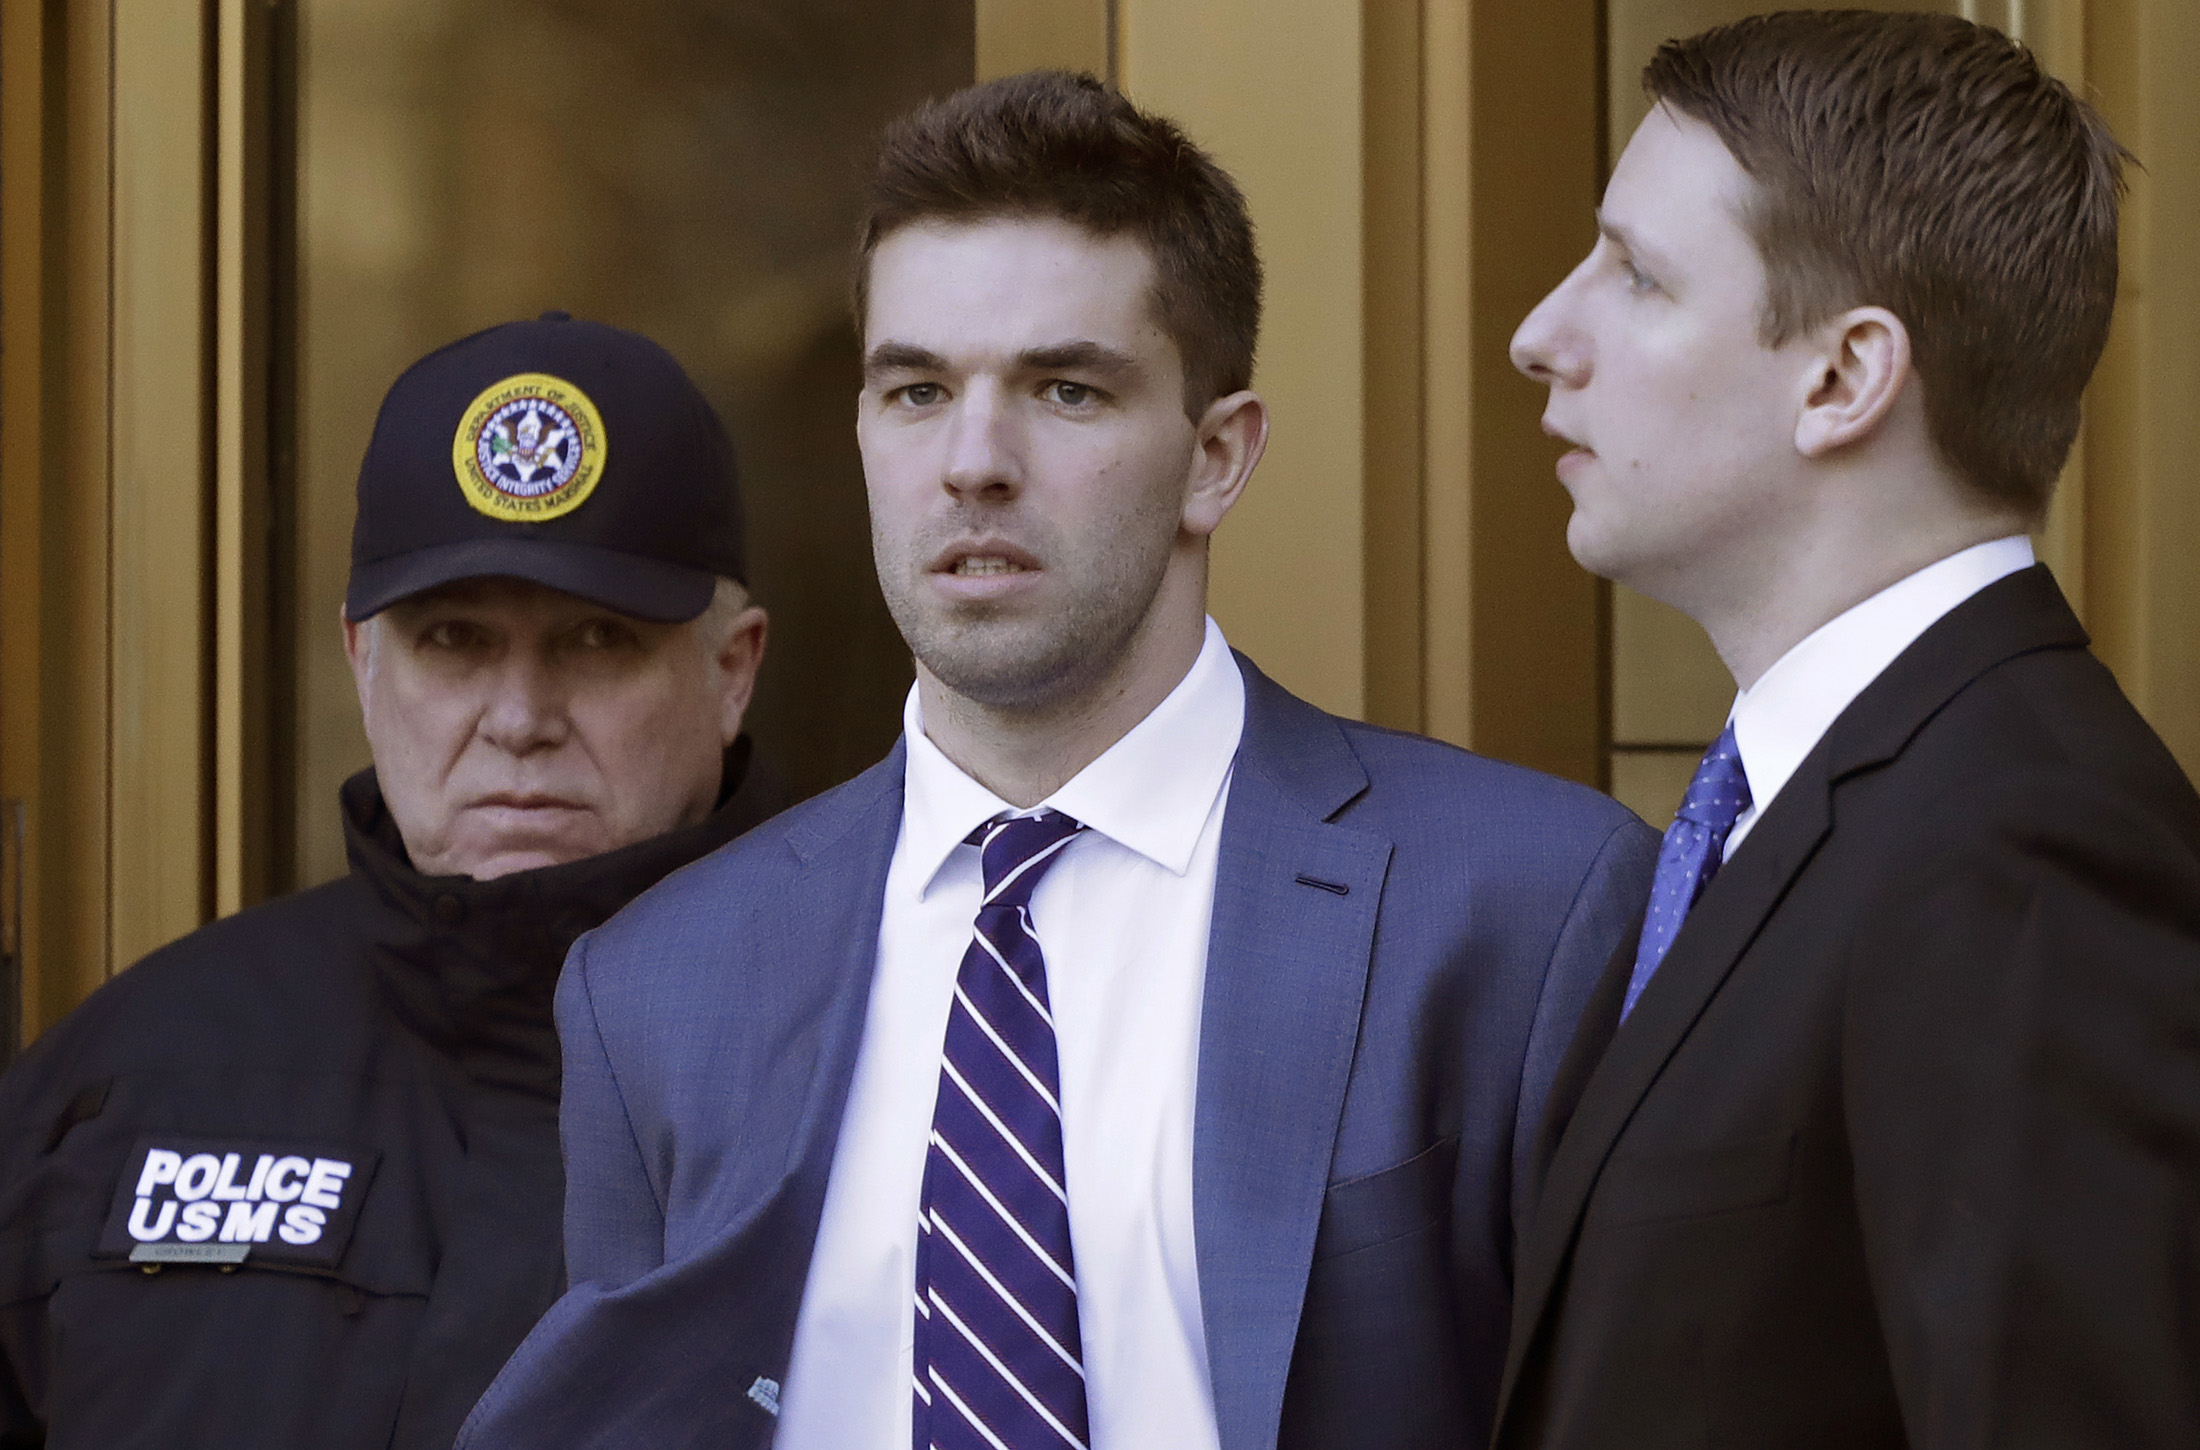 Fyre Festival & Magnises Founder guilty of Fraud gets 6 Years